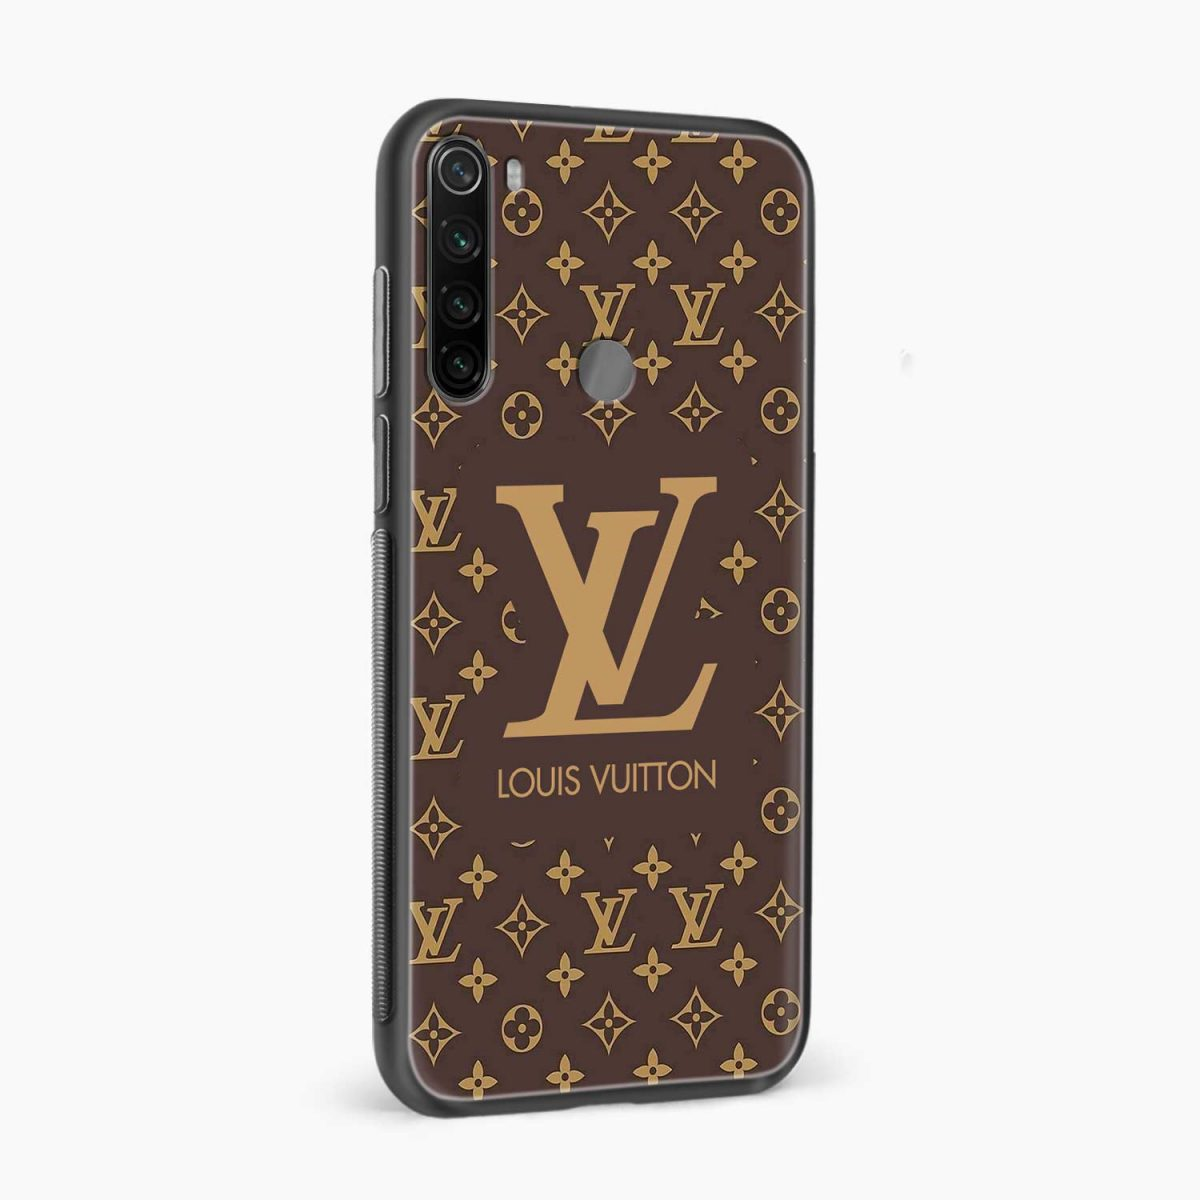 louis vuitton side view redmi note 8 back cover